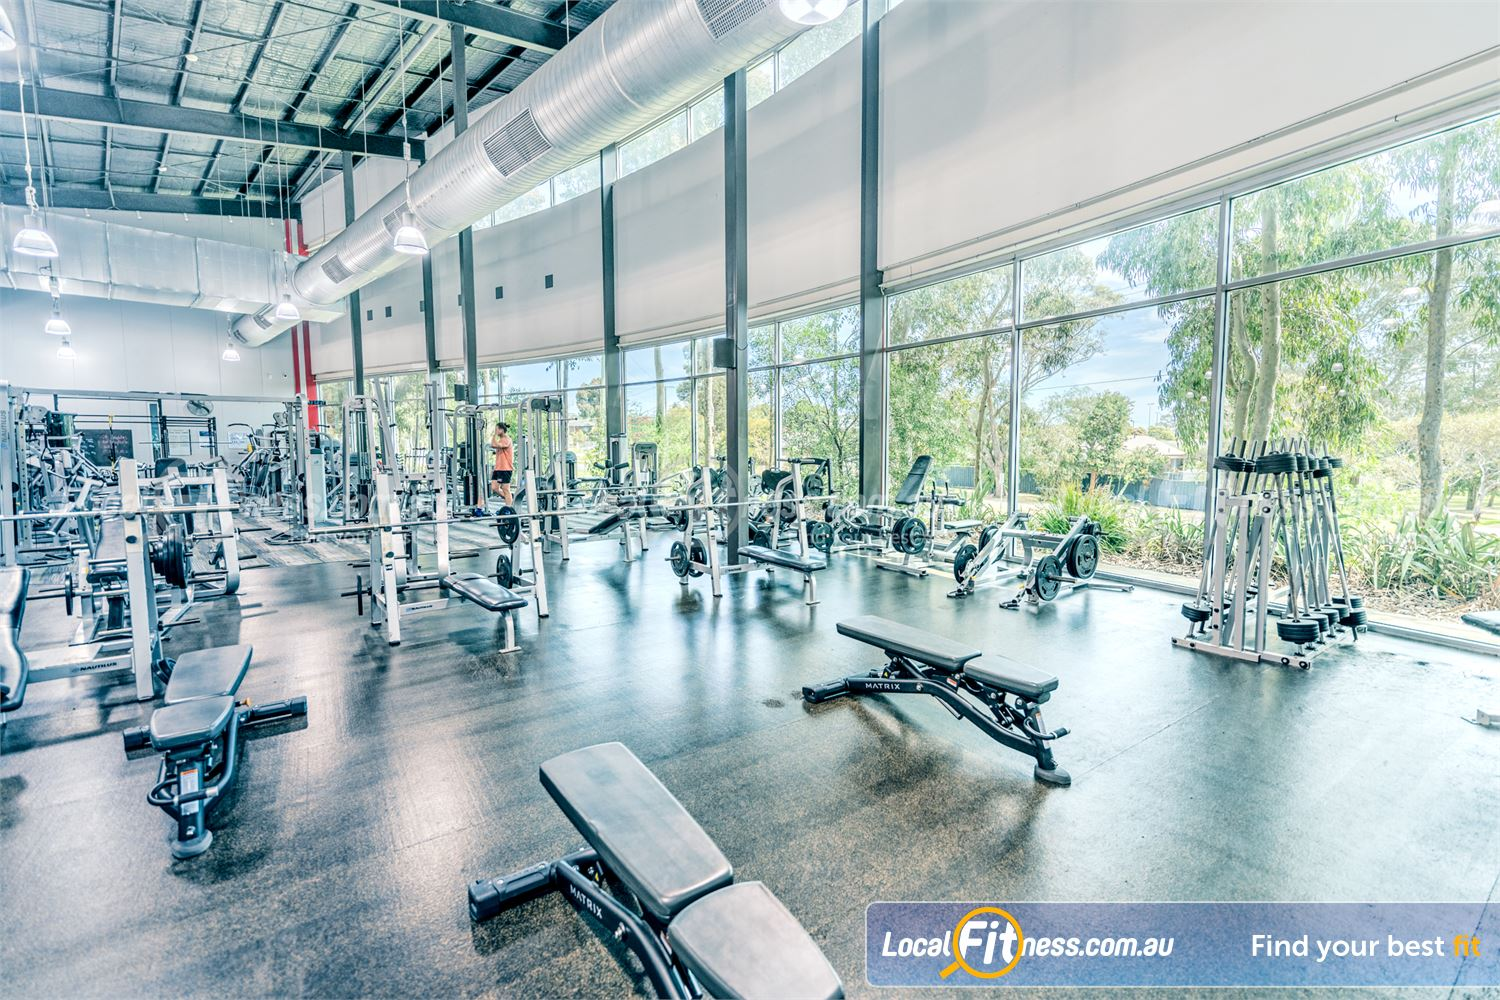 Goodlife Health Clubs Karingal Welcome to the Karingal gym with stunning treescape views.